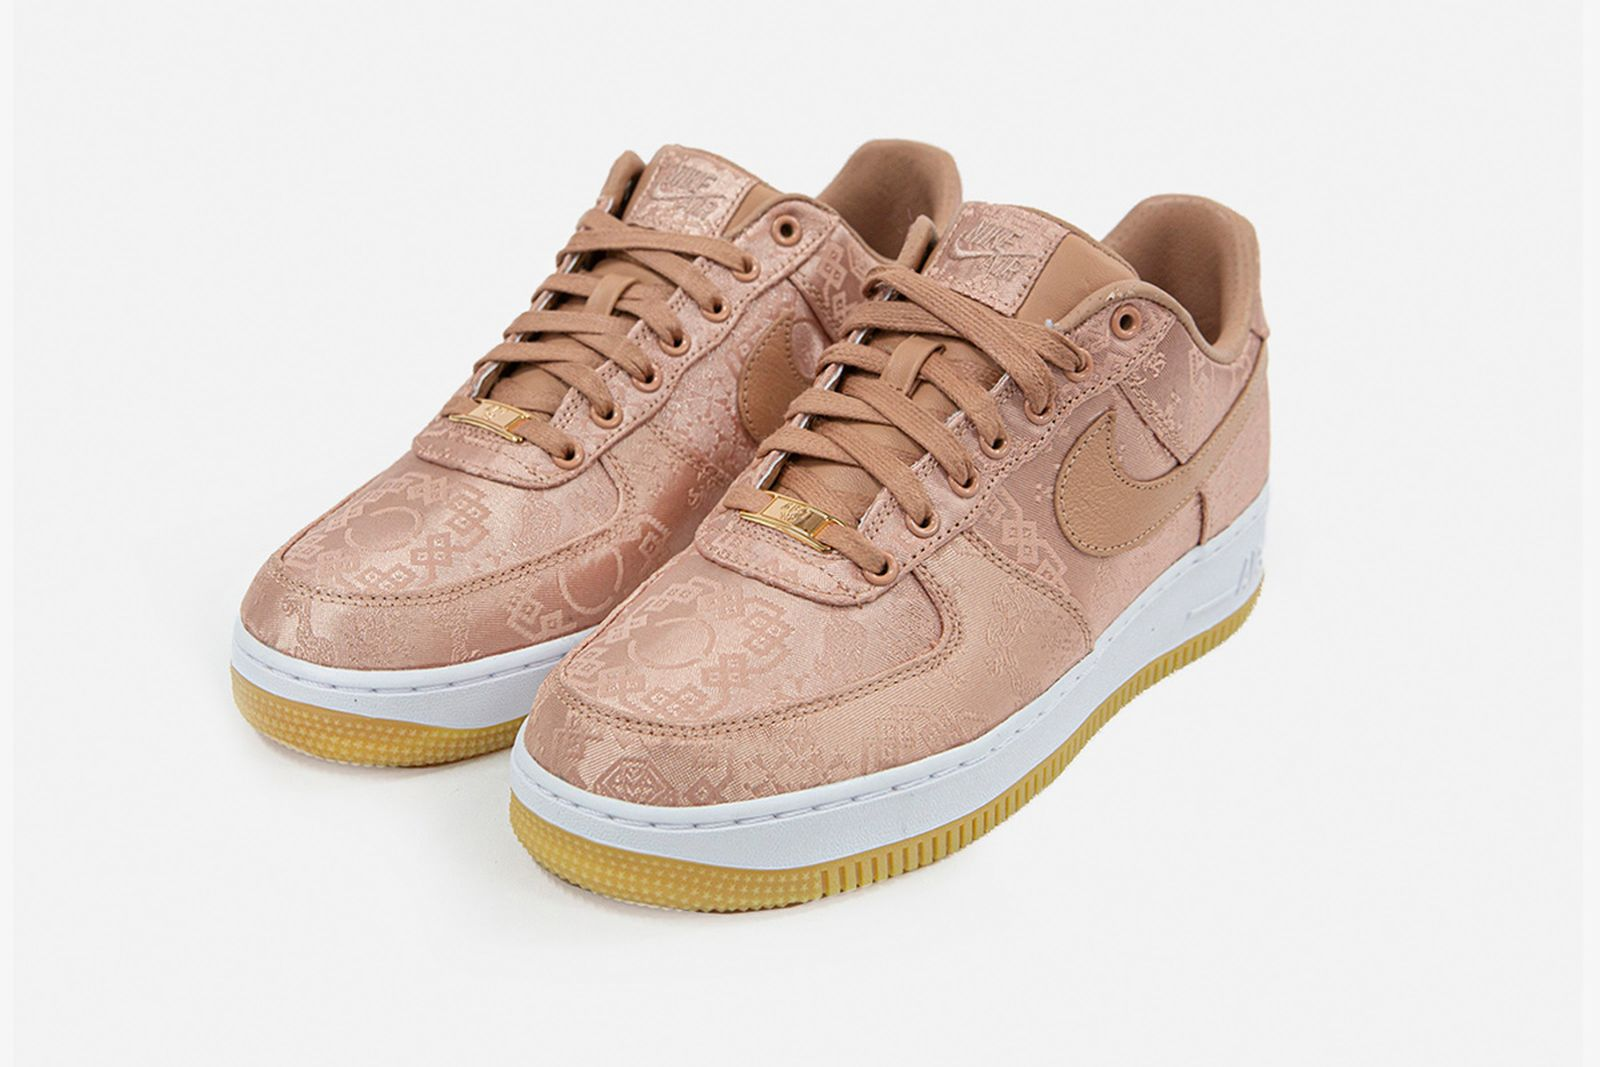 clot-nike-air-force-1-rose-gold-release-date-price-product-04